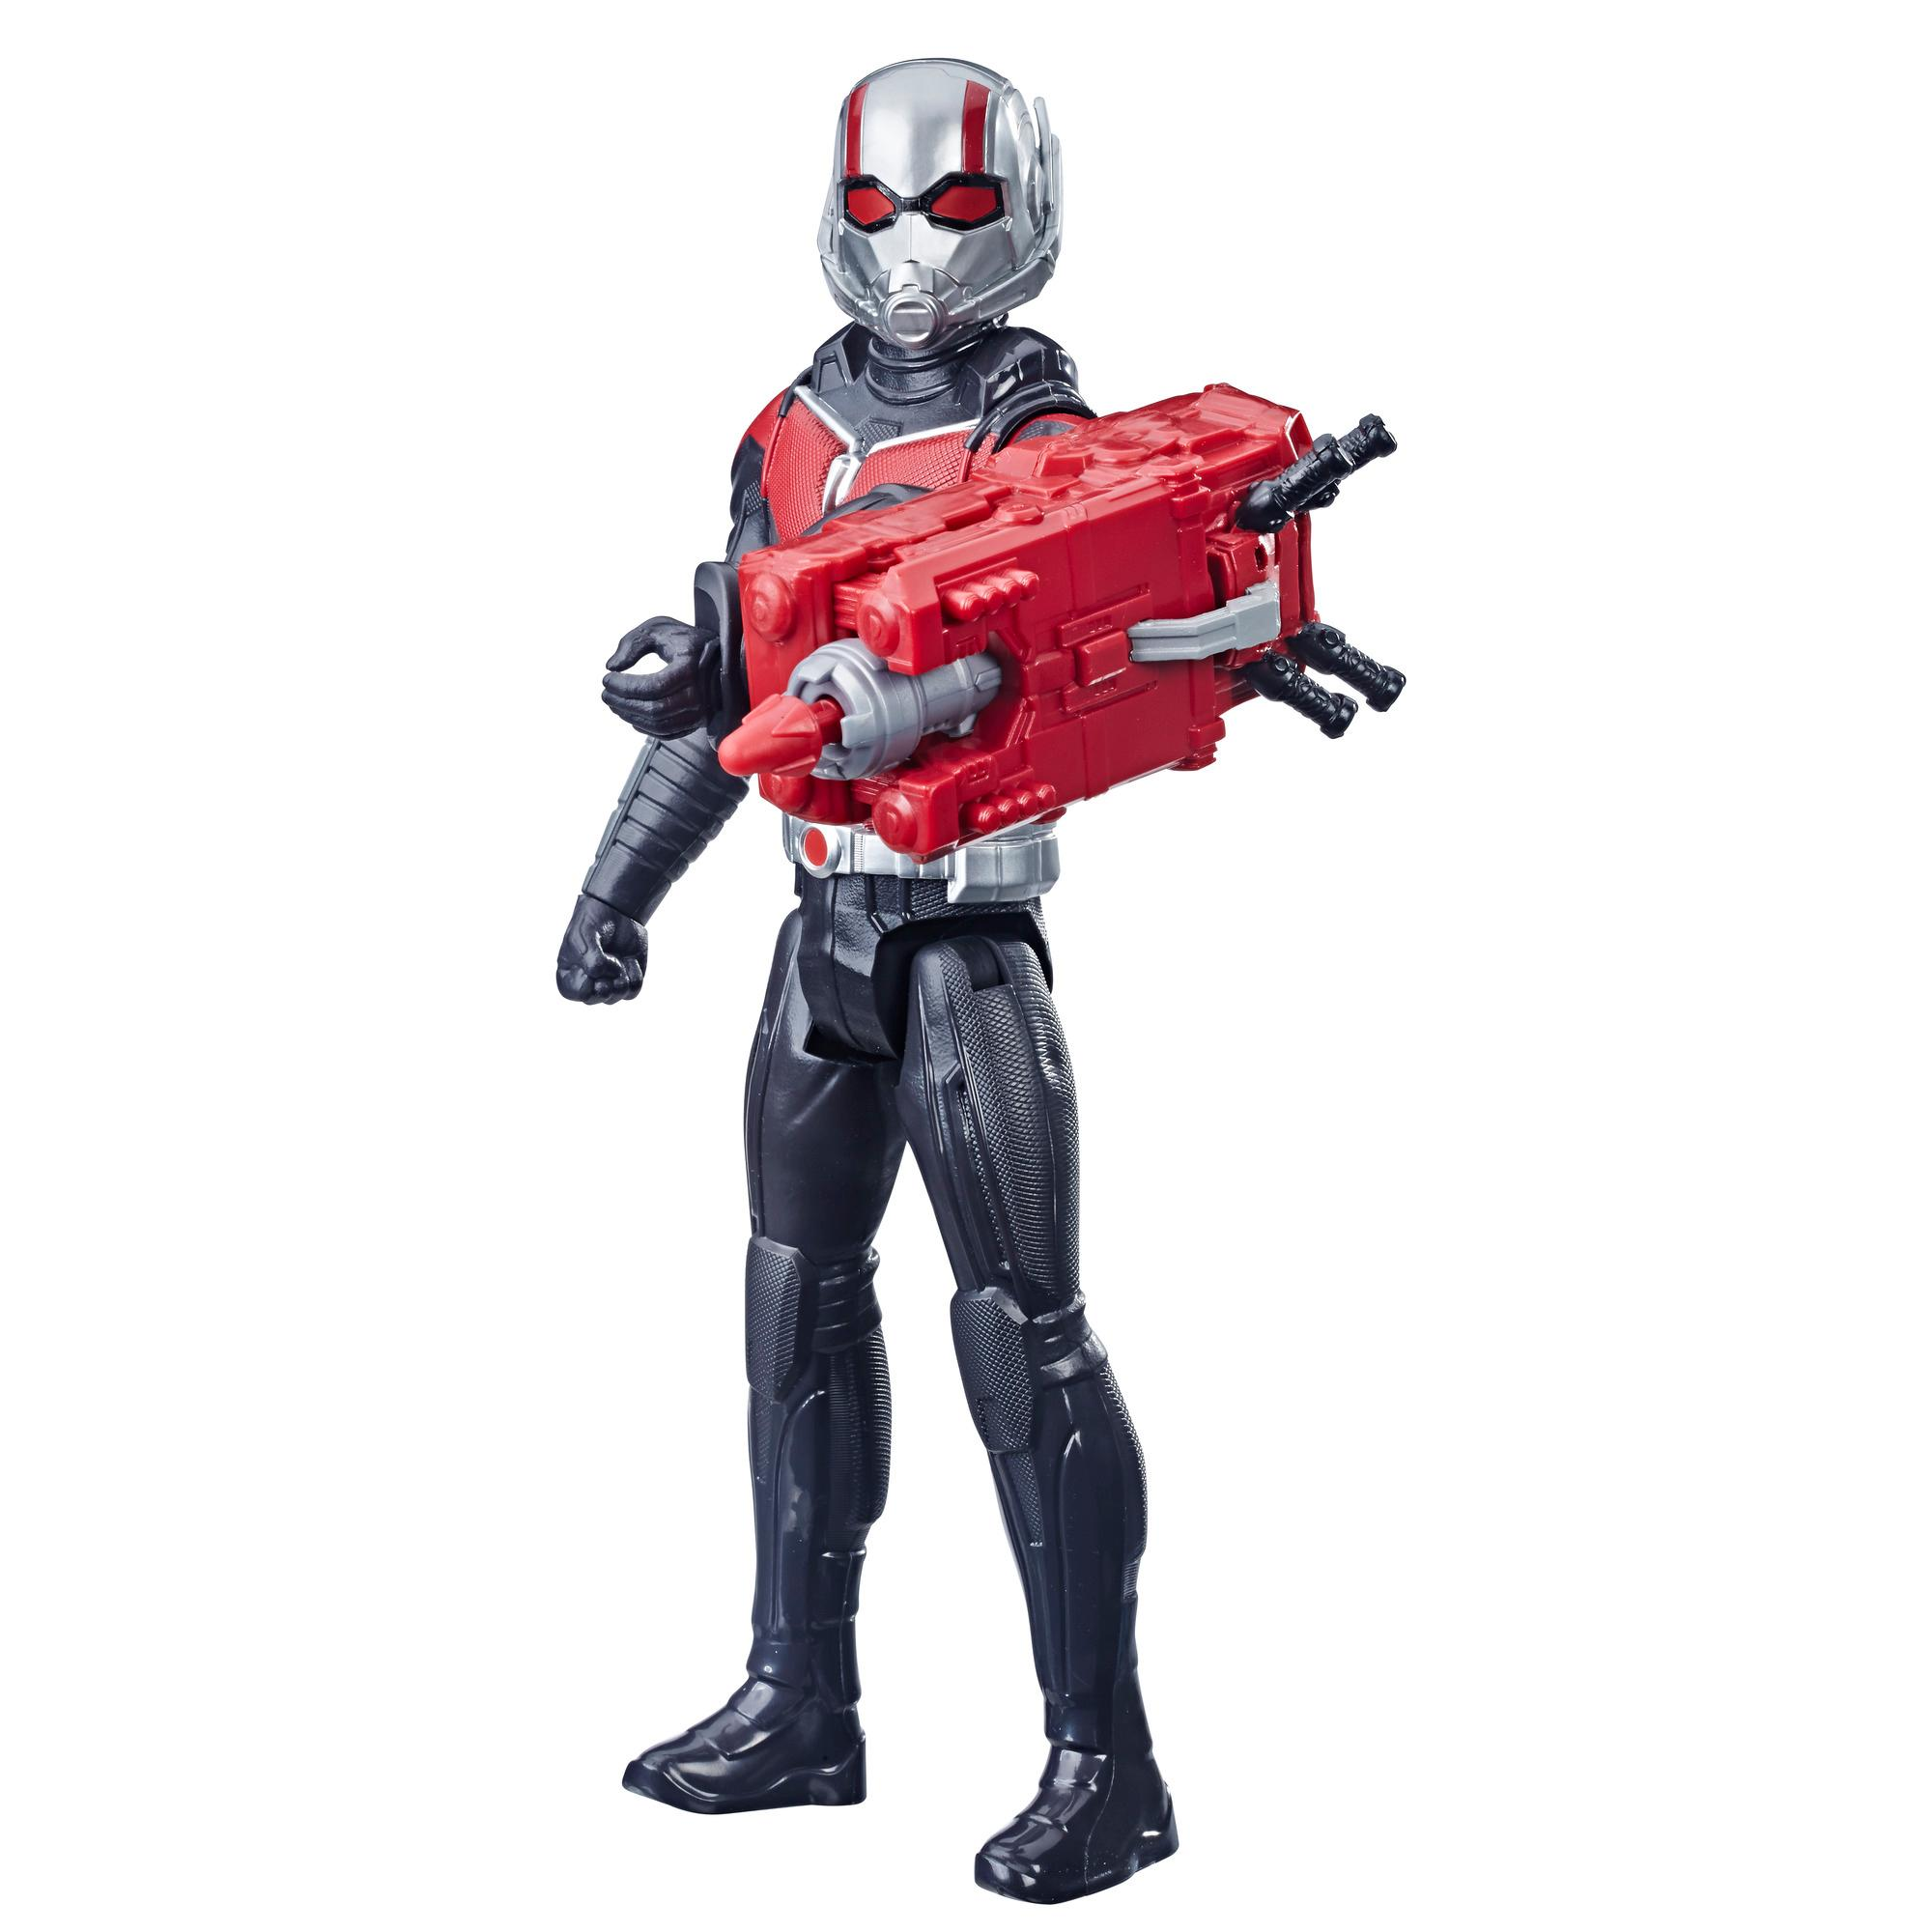 Marvel Avengers: Endgame Titan Hero Power FX Ant-Man